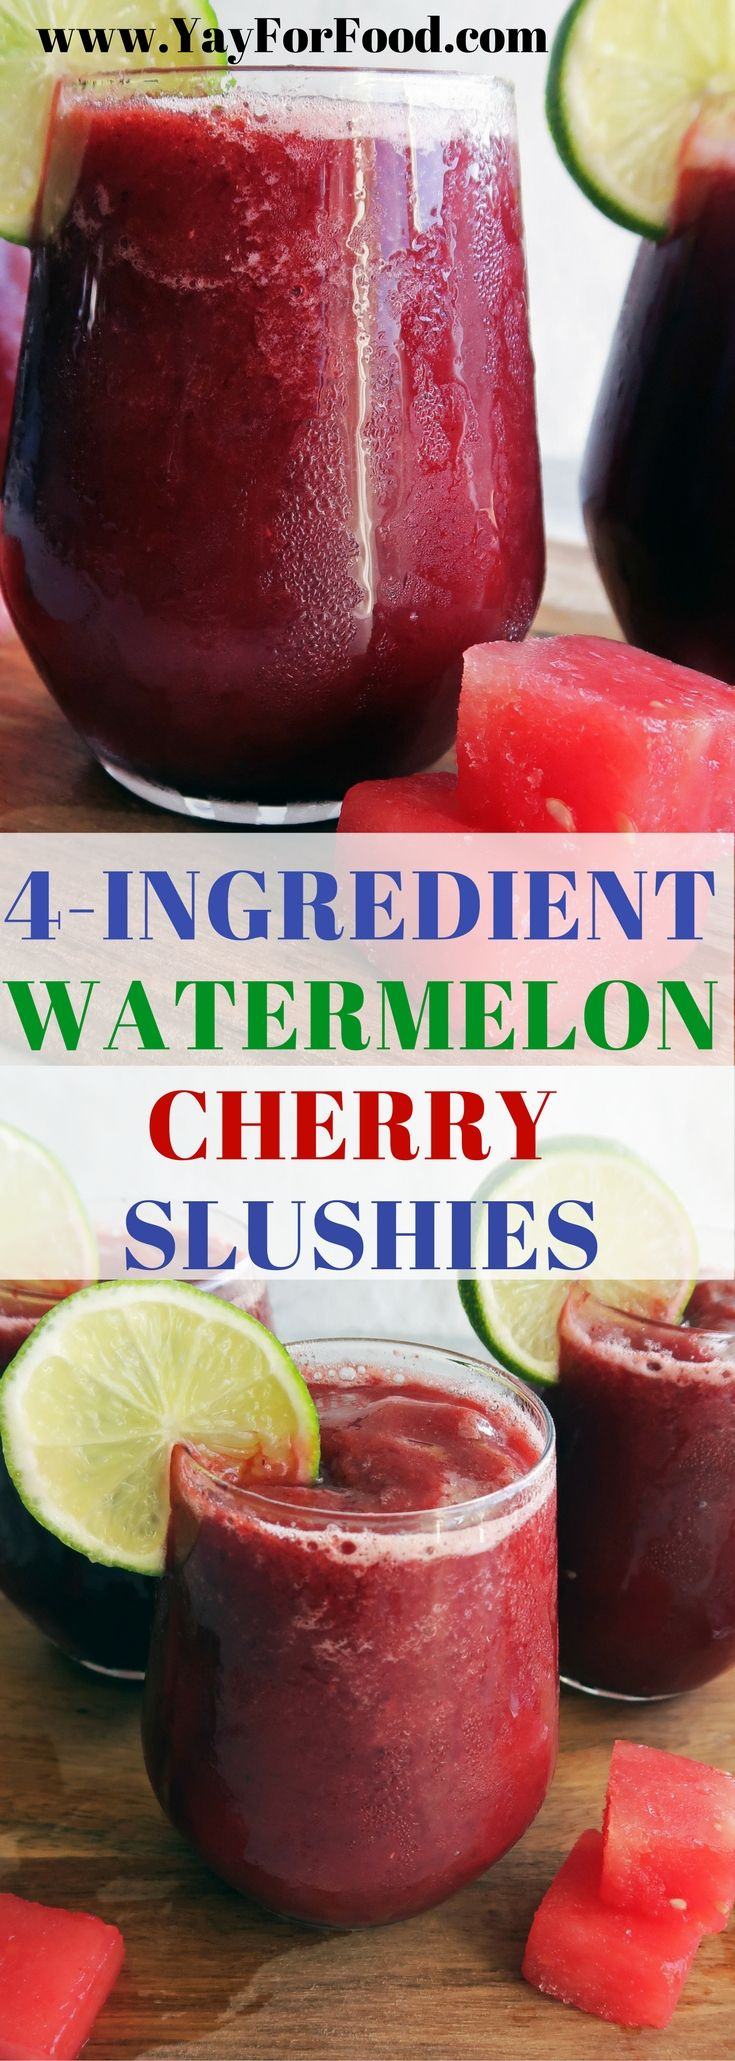 Refreshing, thirst-quenching watermelon cherry slushie is an easy, delicious drink that is wonderful on a hot day! Perfect for the whole family! | Non-alcoholic drinks | slushy | vegetarian | gluten-free | paleo | vegan | (Vegan Cheesecake Hot For Food)